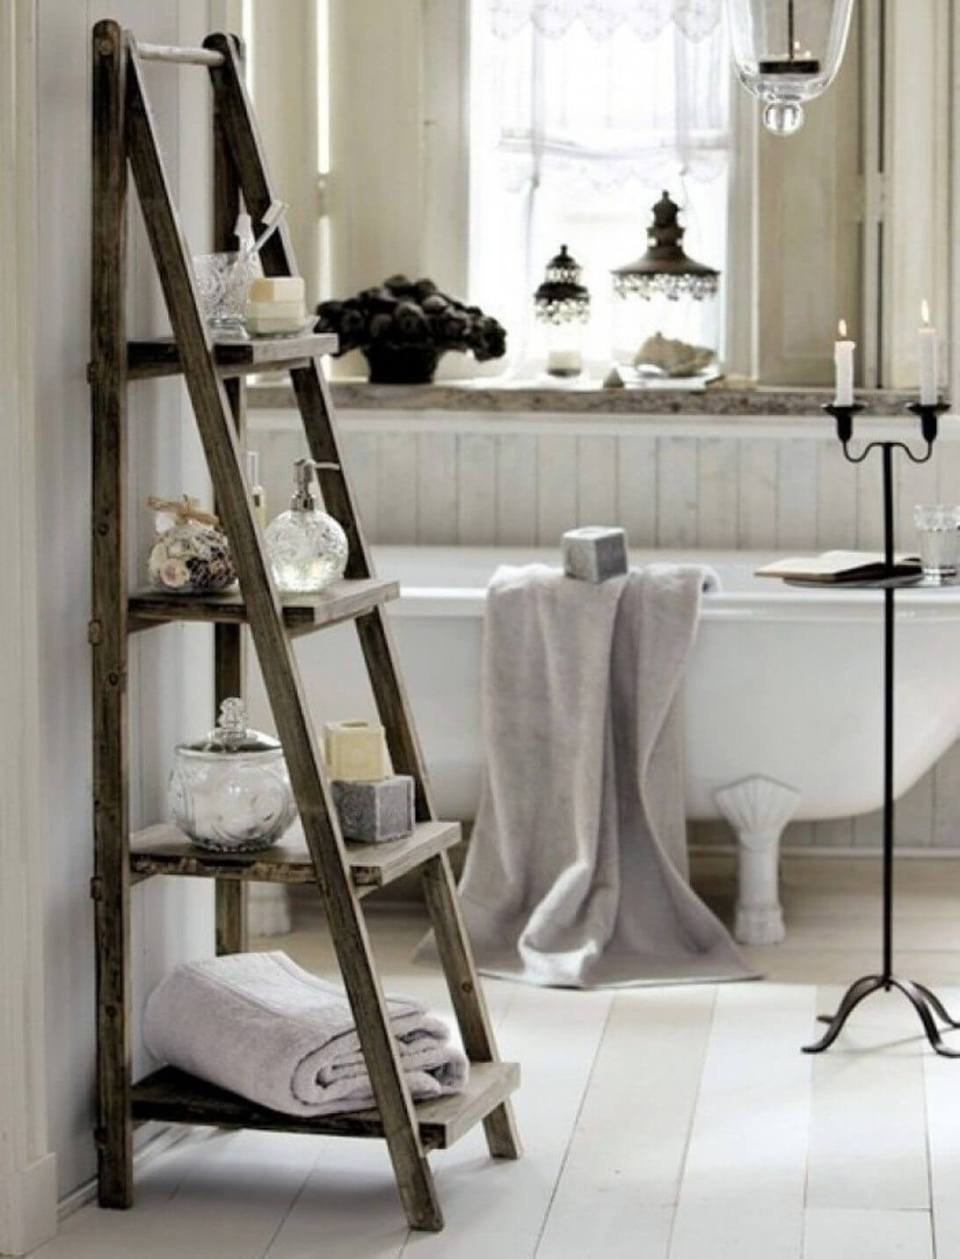 Ladder Display and Bathroom Organizer